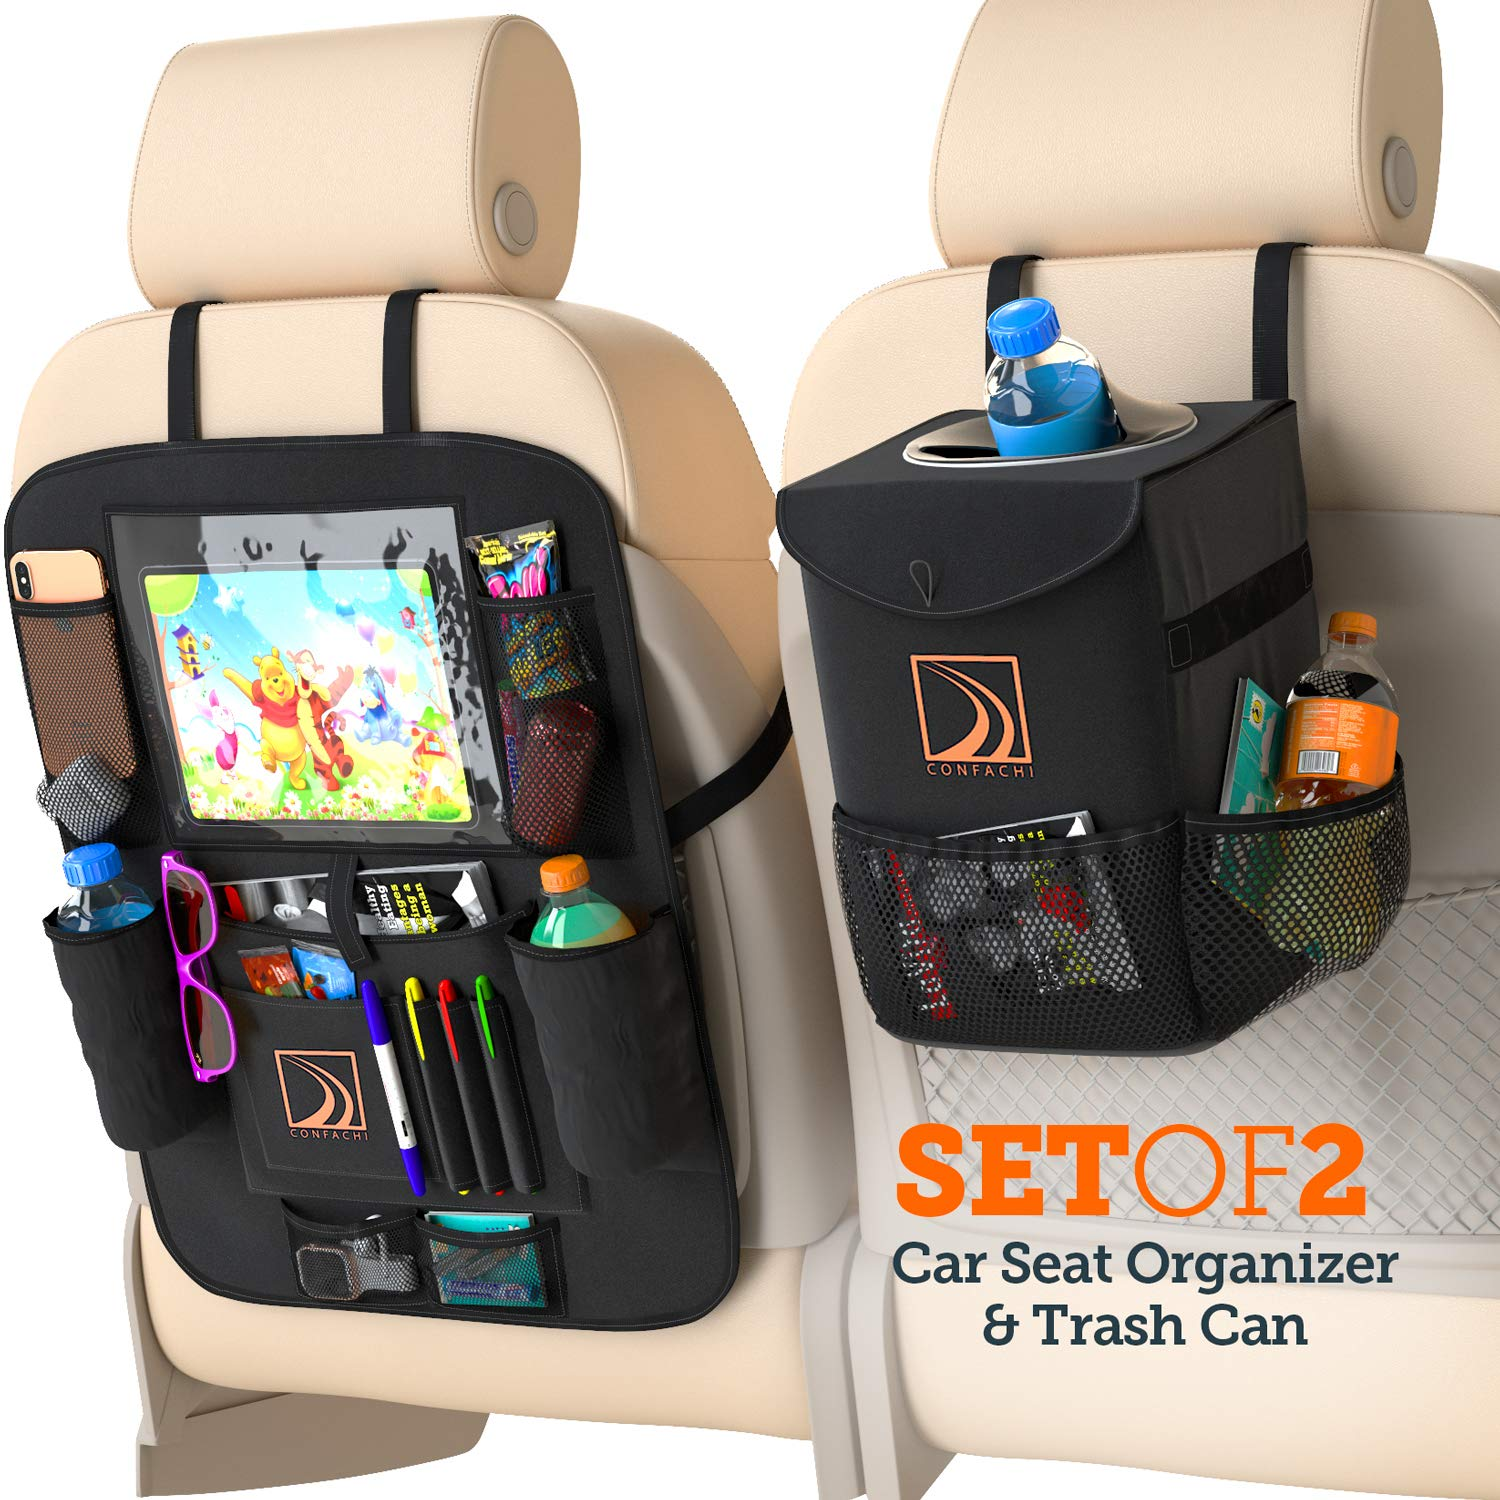 Confachi Backseat Organizer and Car Trash Can Bundle of Car Garbage Can with Lid and Car Seat Organizer for Kids with Ipad Holder and Cup Holder and Extra Car Storage Pockets ( Black) by Confachi